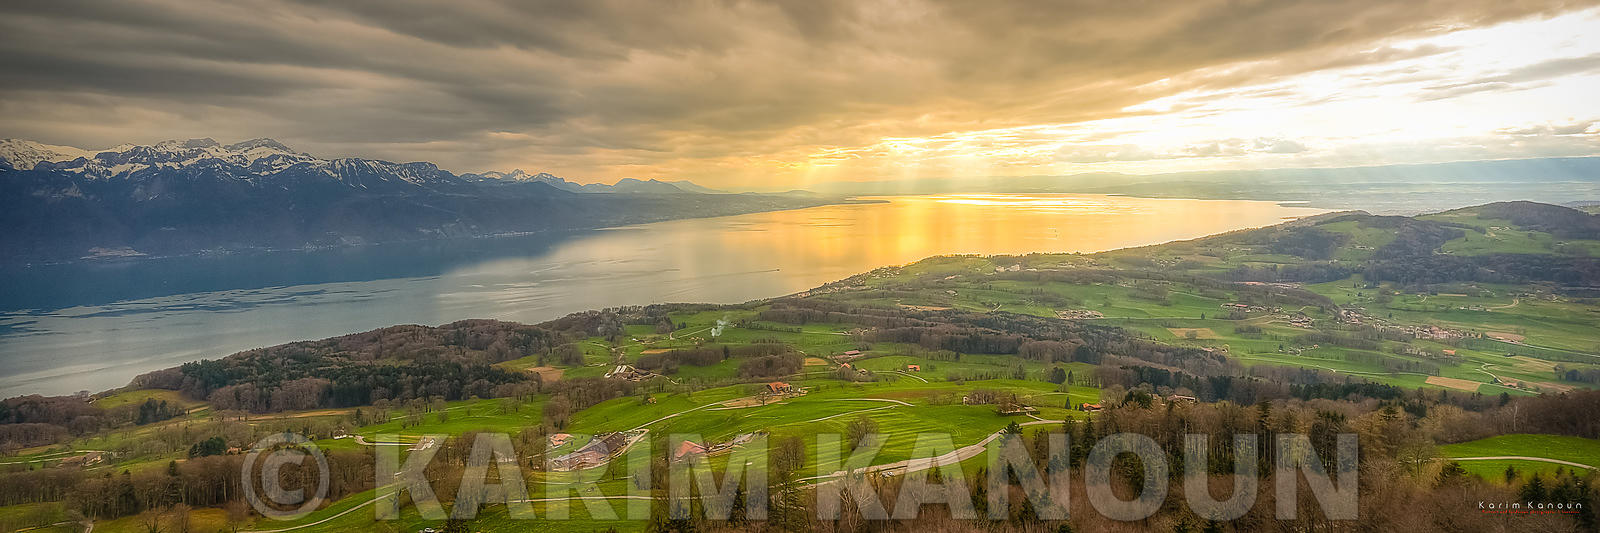 Dramtic sky with a golden hole in the clouds.View of the centerpart of Lake Geneva from Mont Pèlerin